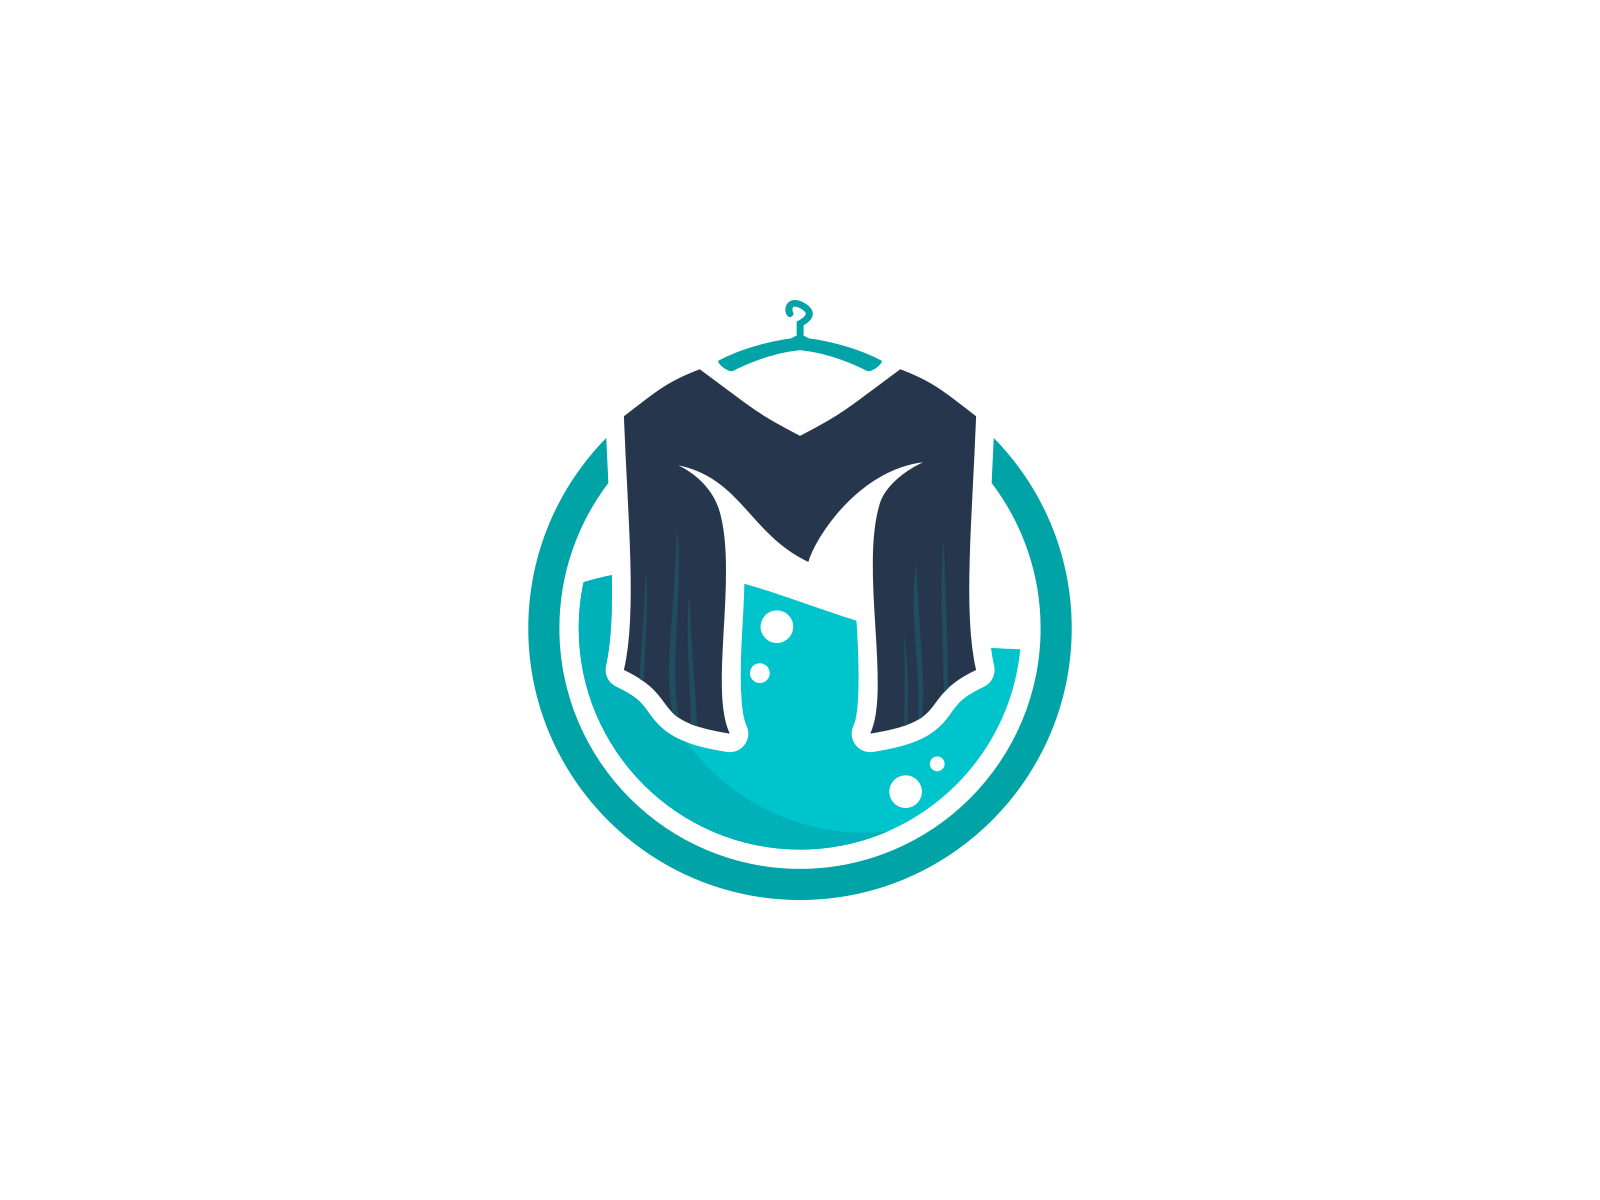 muchklis laundry logo by adi prayoga on dribbble muchklis laundry logo by adi prayoga on